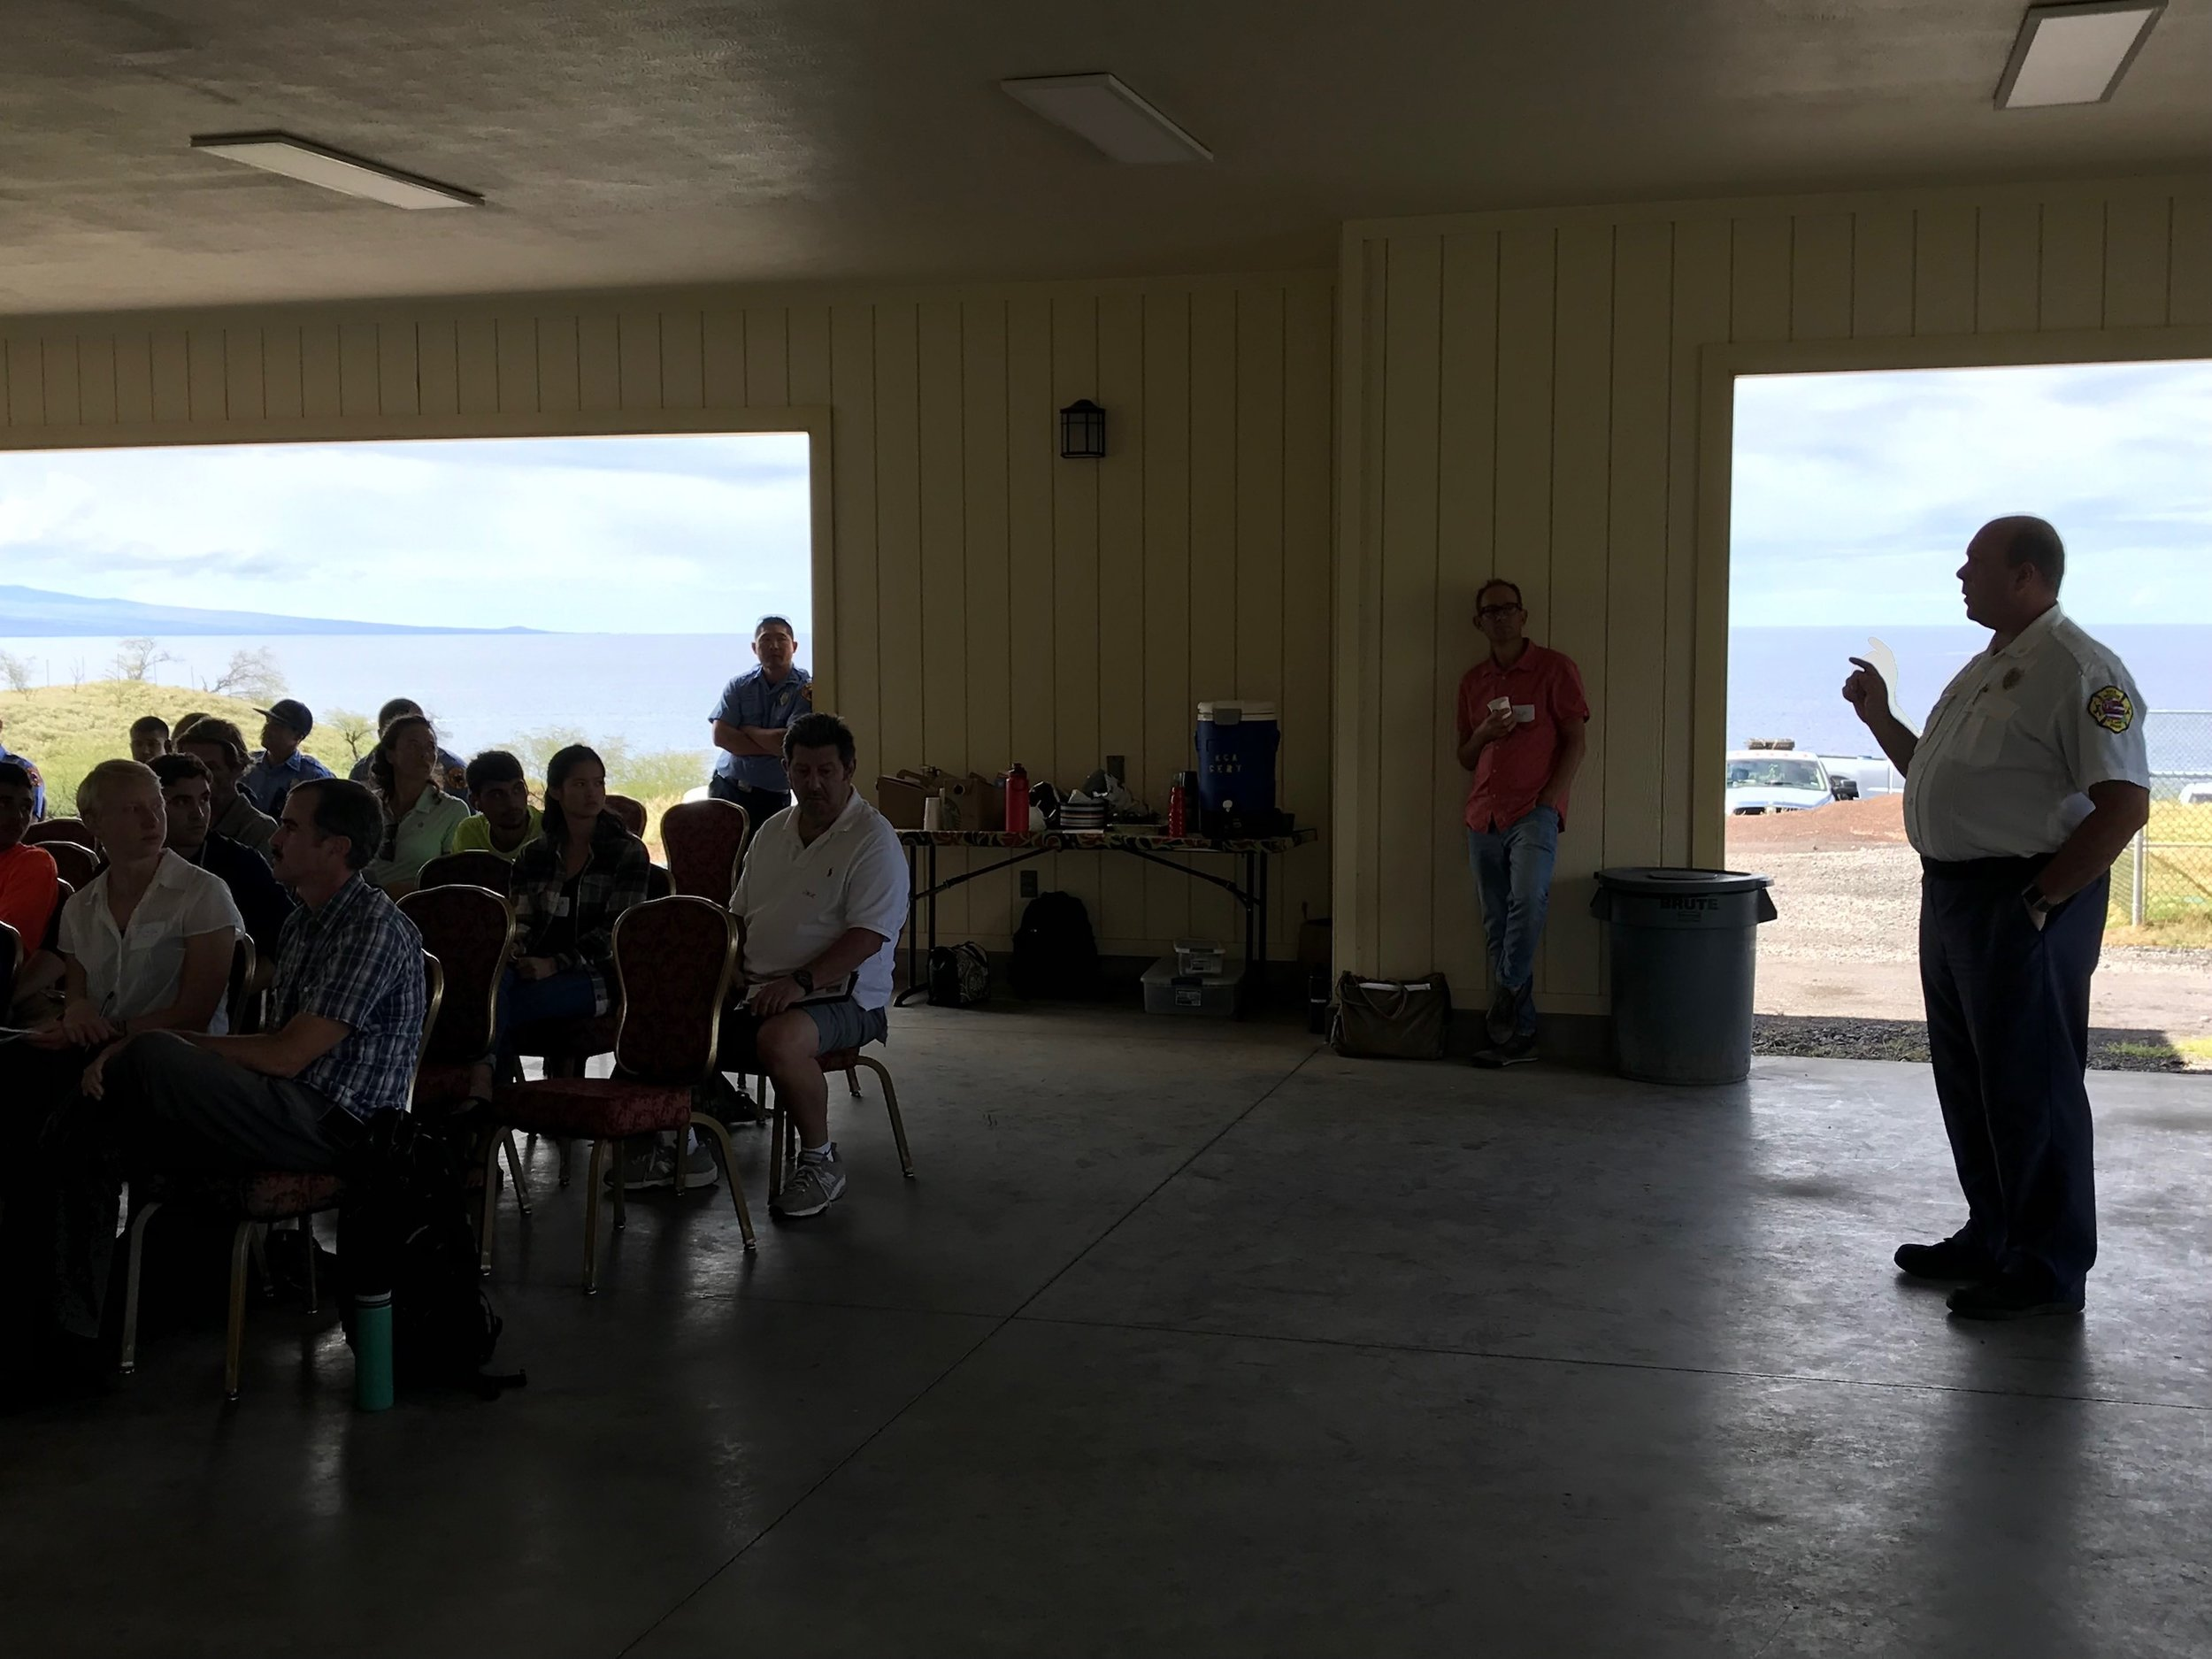 Hawaii Island Kailapa Vegetative Fuels Management Collaborative Action Planning Workshop_2_26_2019_59.jpg